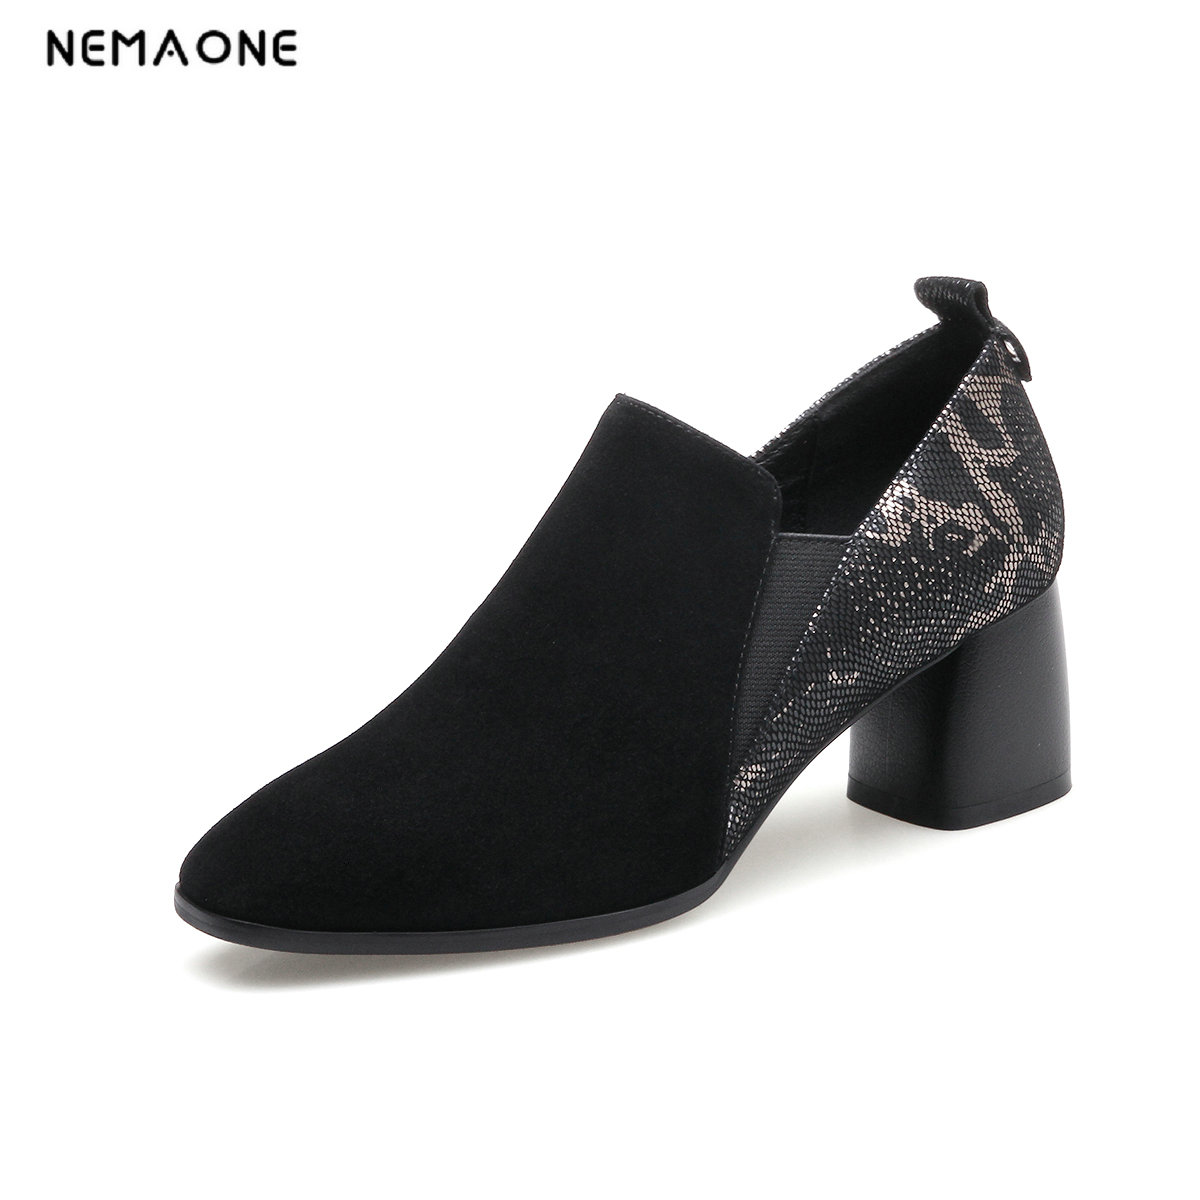 NEMAONE New Fashion 2018 Genuine leather suede zipper shoes woman ankle shoes high heels round toe Autumn 34-42 size black bassiriana new 2017 winter high boots shoes woman high heels round toe zipper genuine leather and suede black 35 40 size